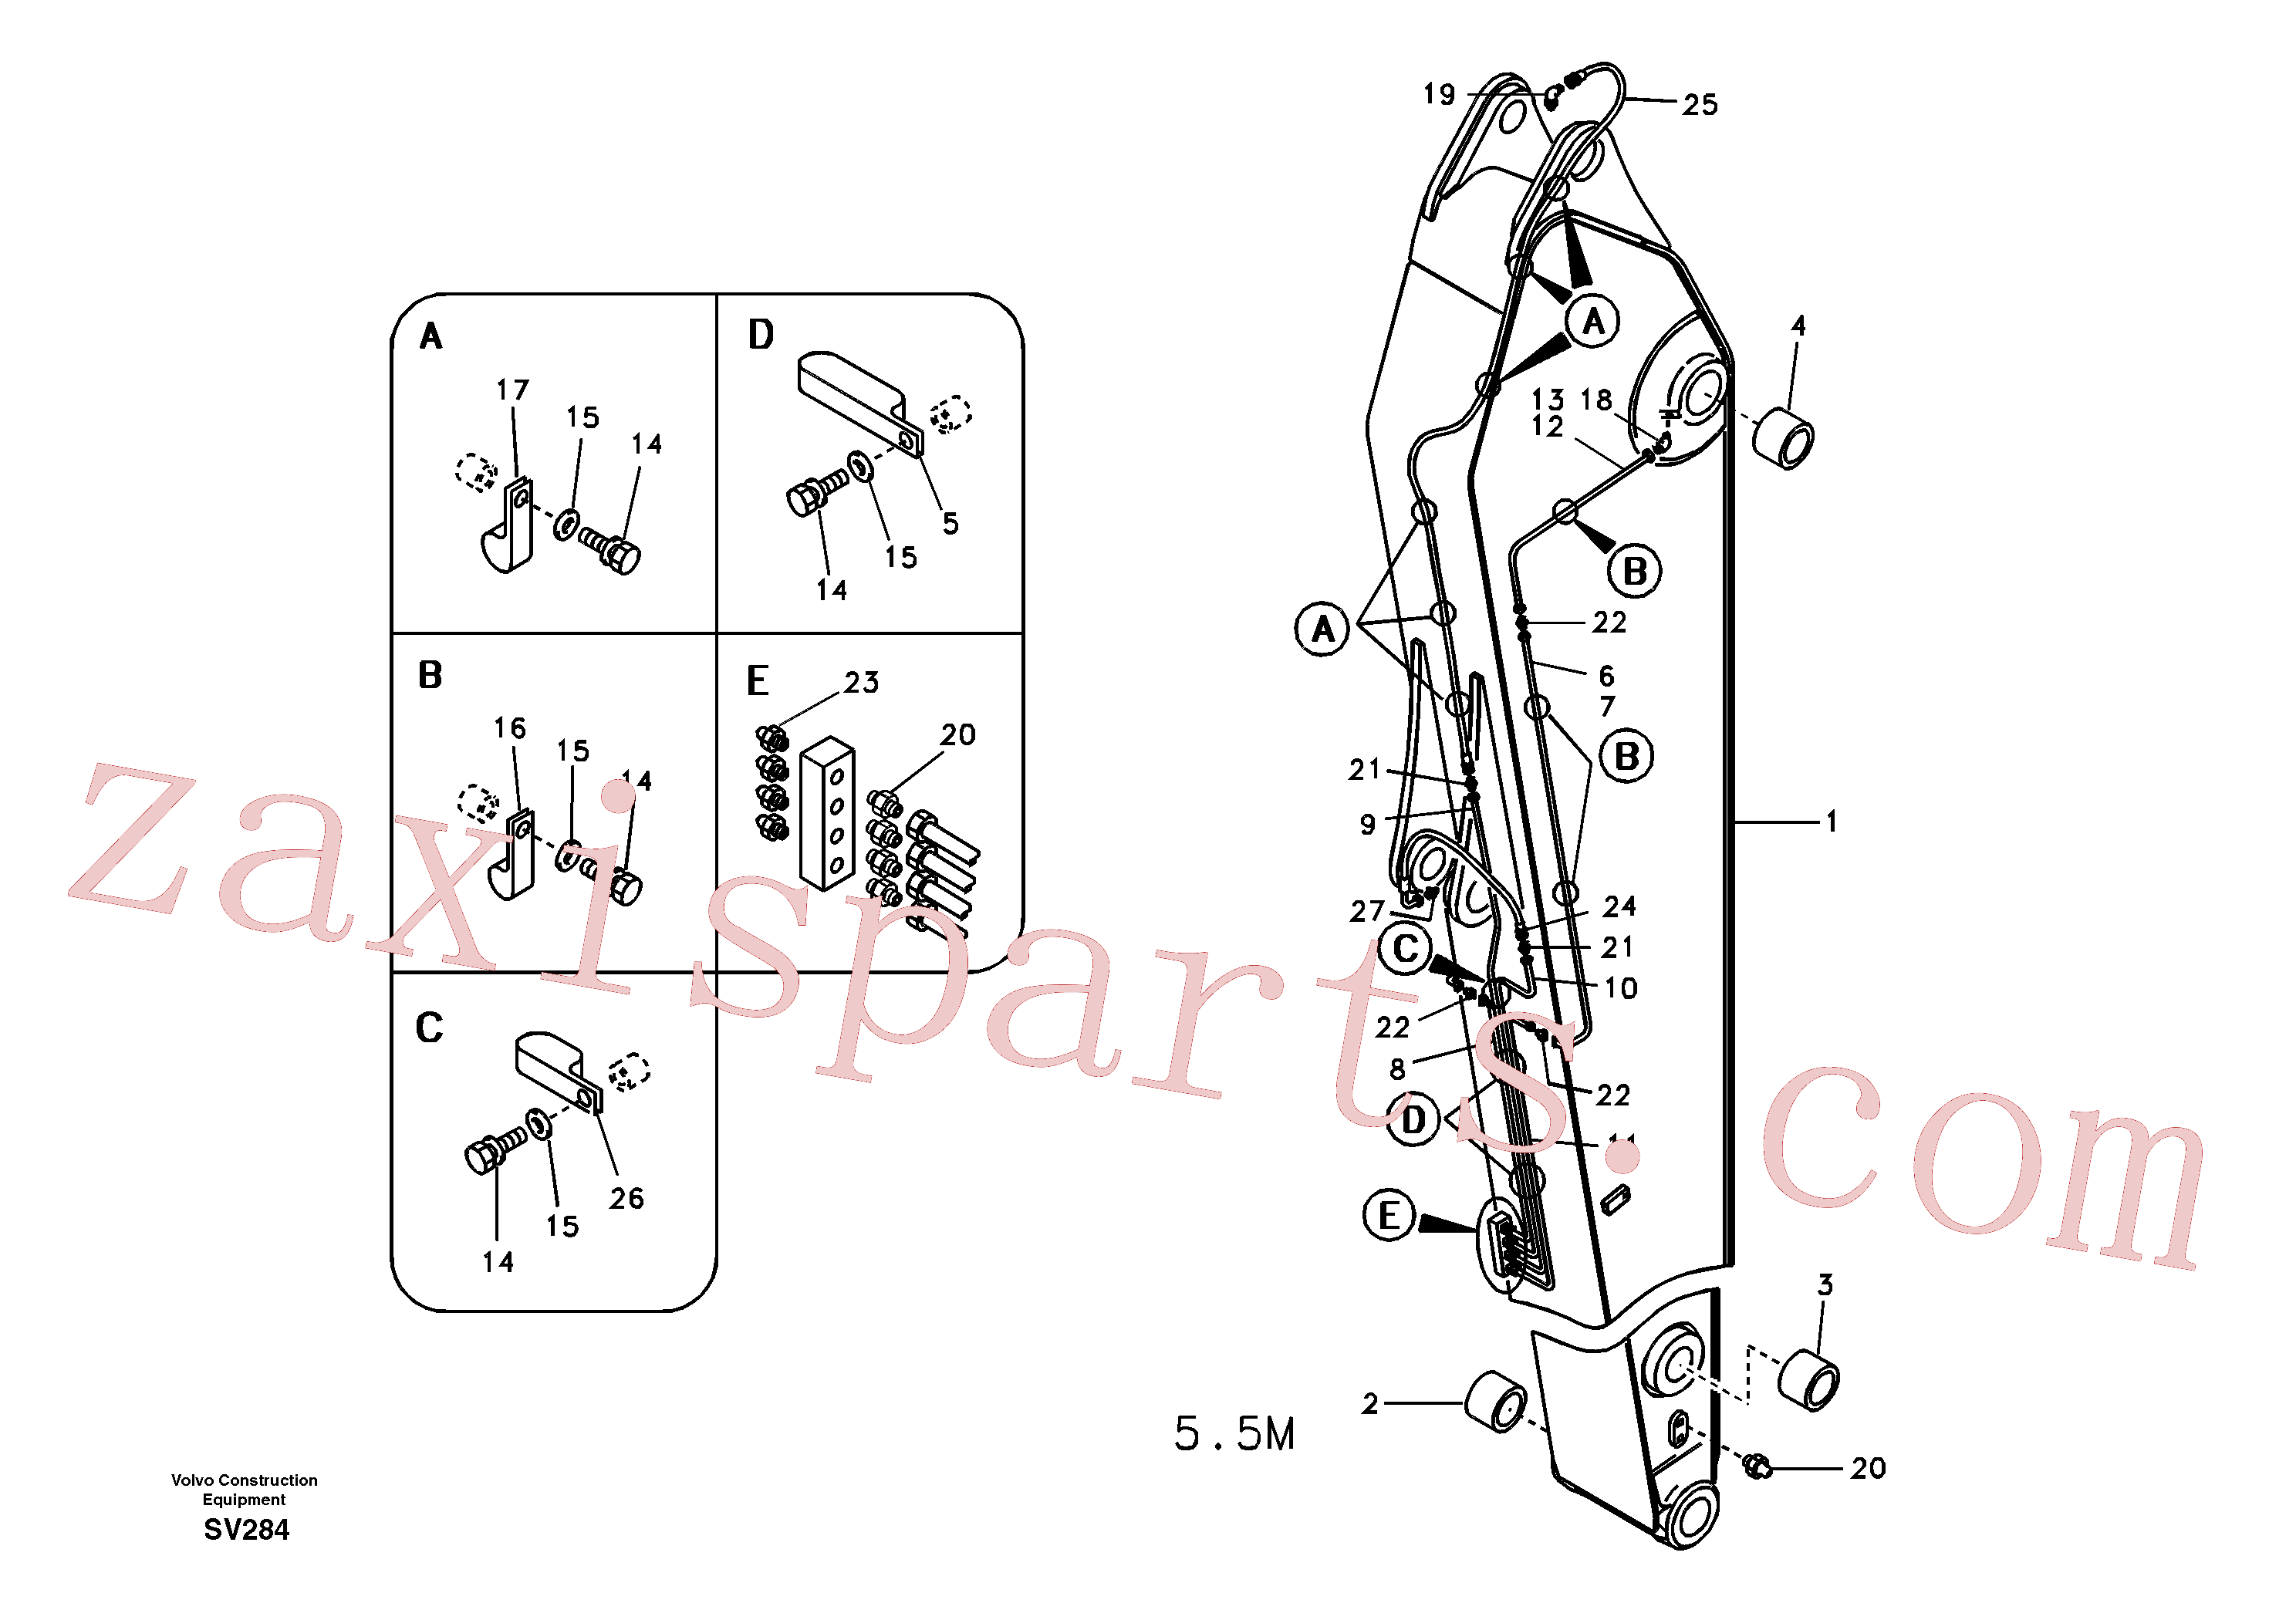 VOE14880988 for Volvo Dipper arm and grease piping with piping seat, long reach(SV284 assembly)